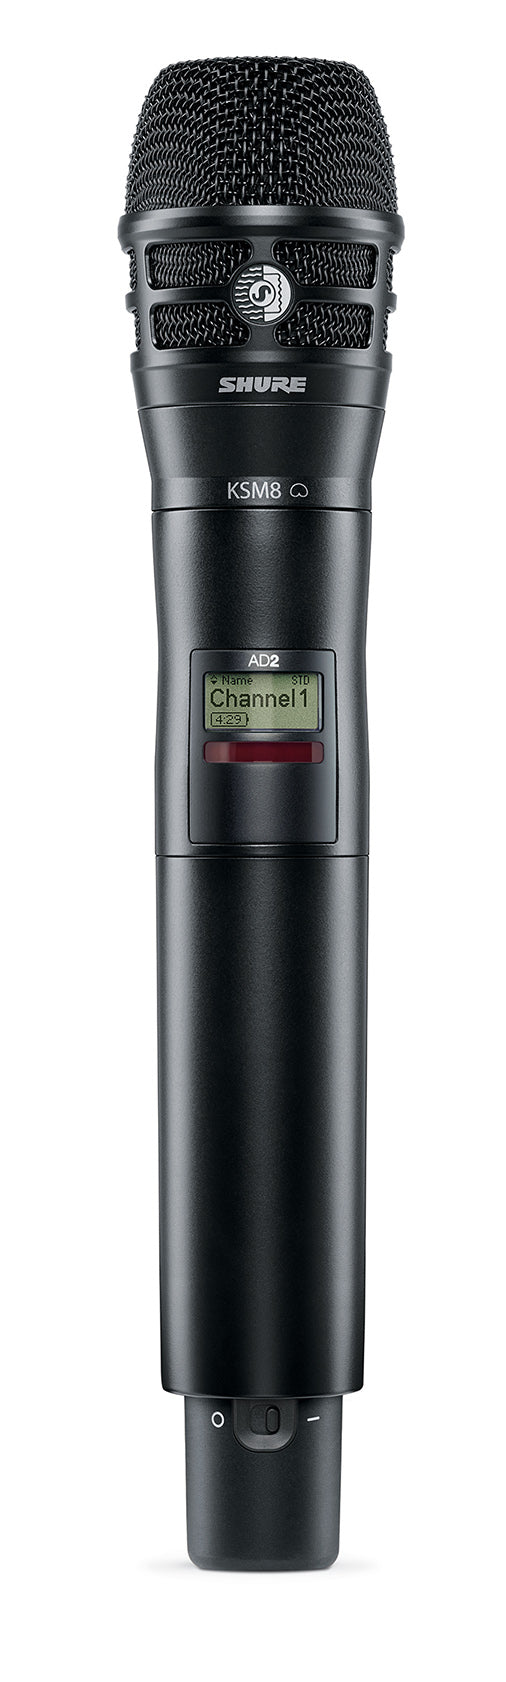 Shure AD2/K8B Axient Digital Handheld Transmitter W/ KSM8 Cartridge - Black